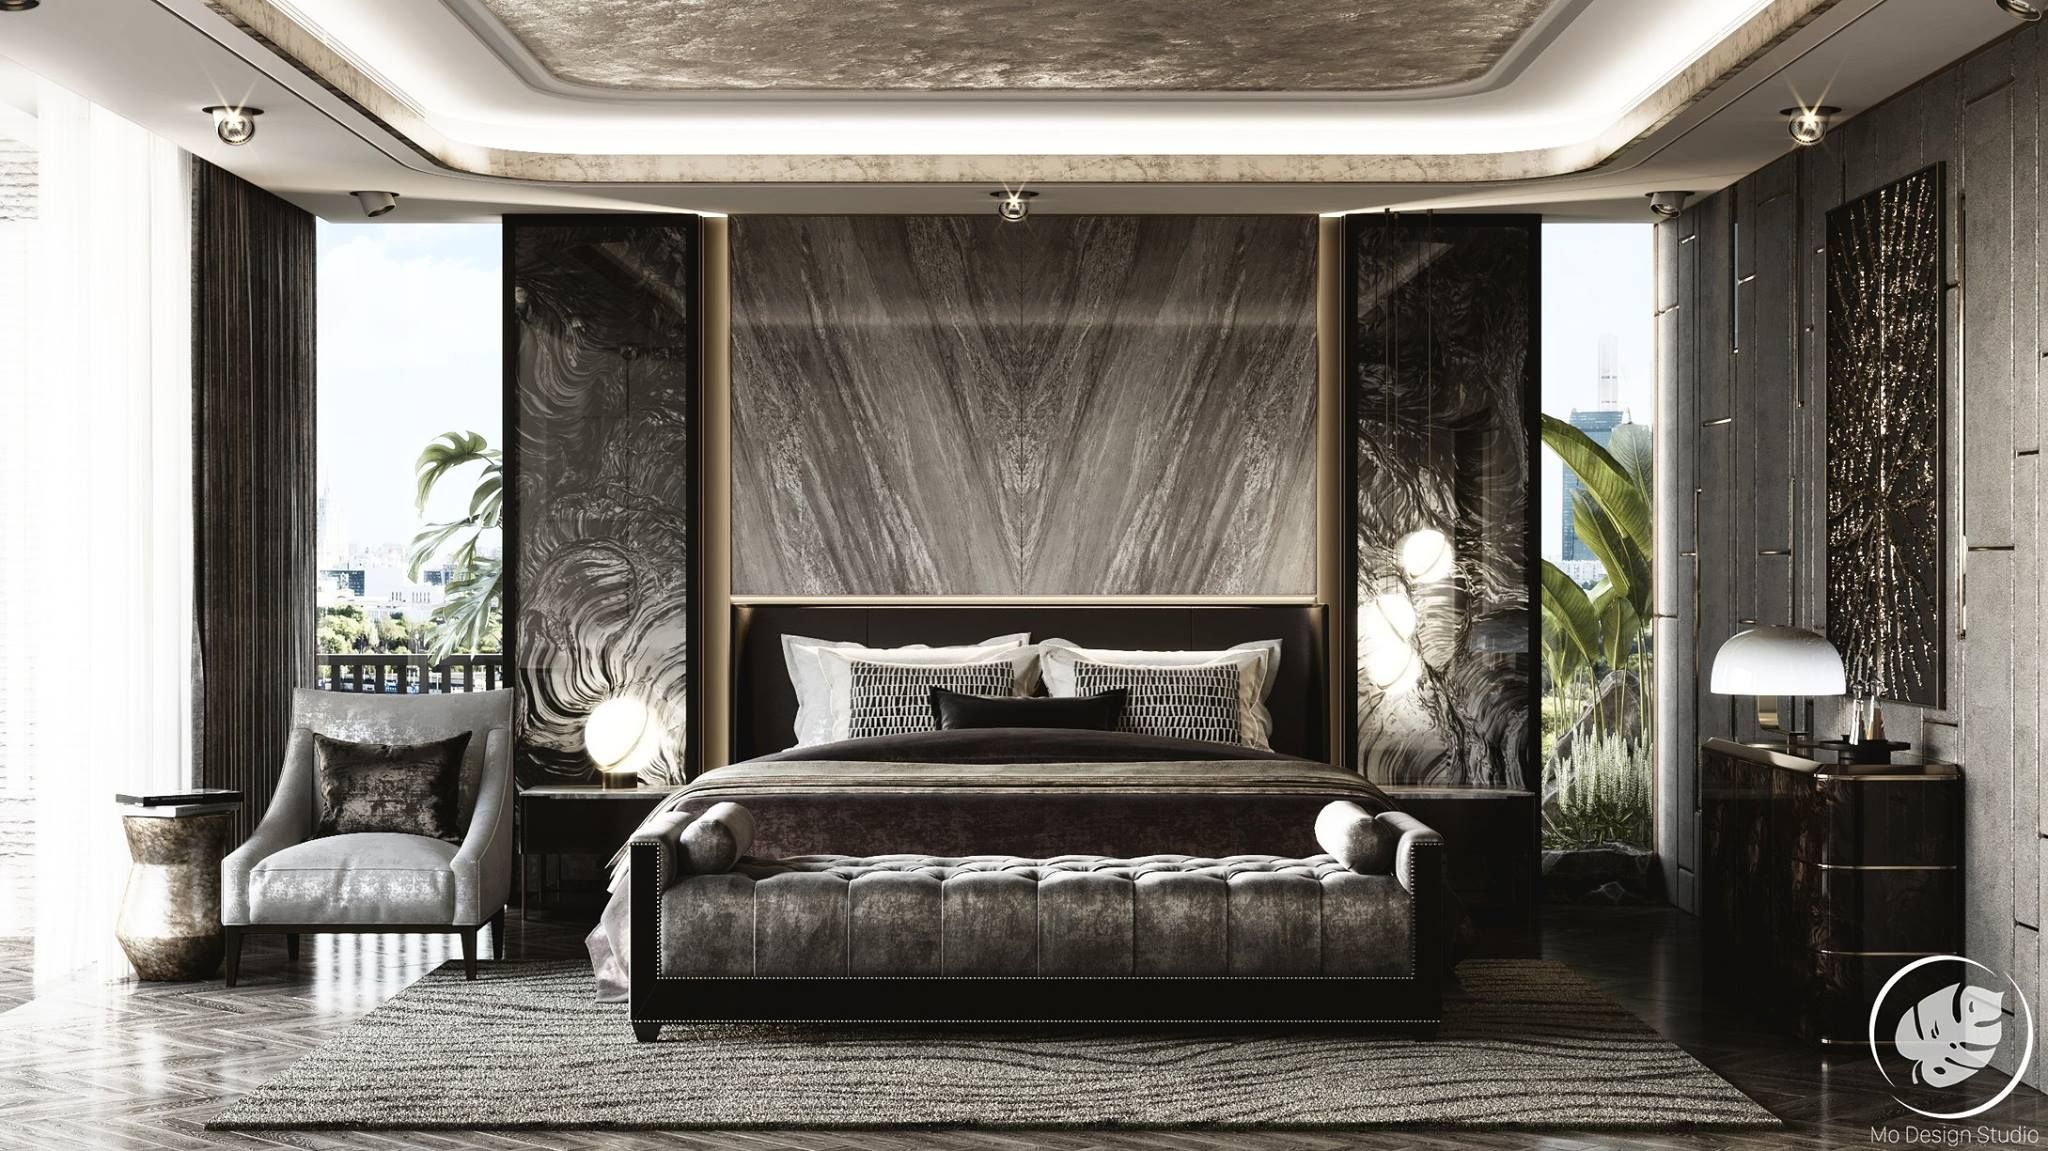 Pin By Mcarchi Design On Luxurious Design Luxury Apartments Interior Modern Luxury Bedroom Apartment Interior Decorating